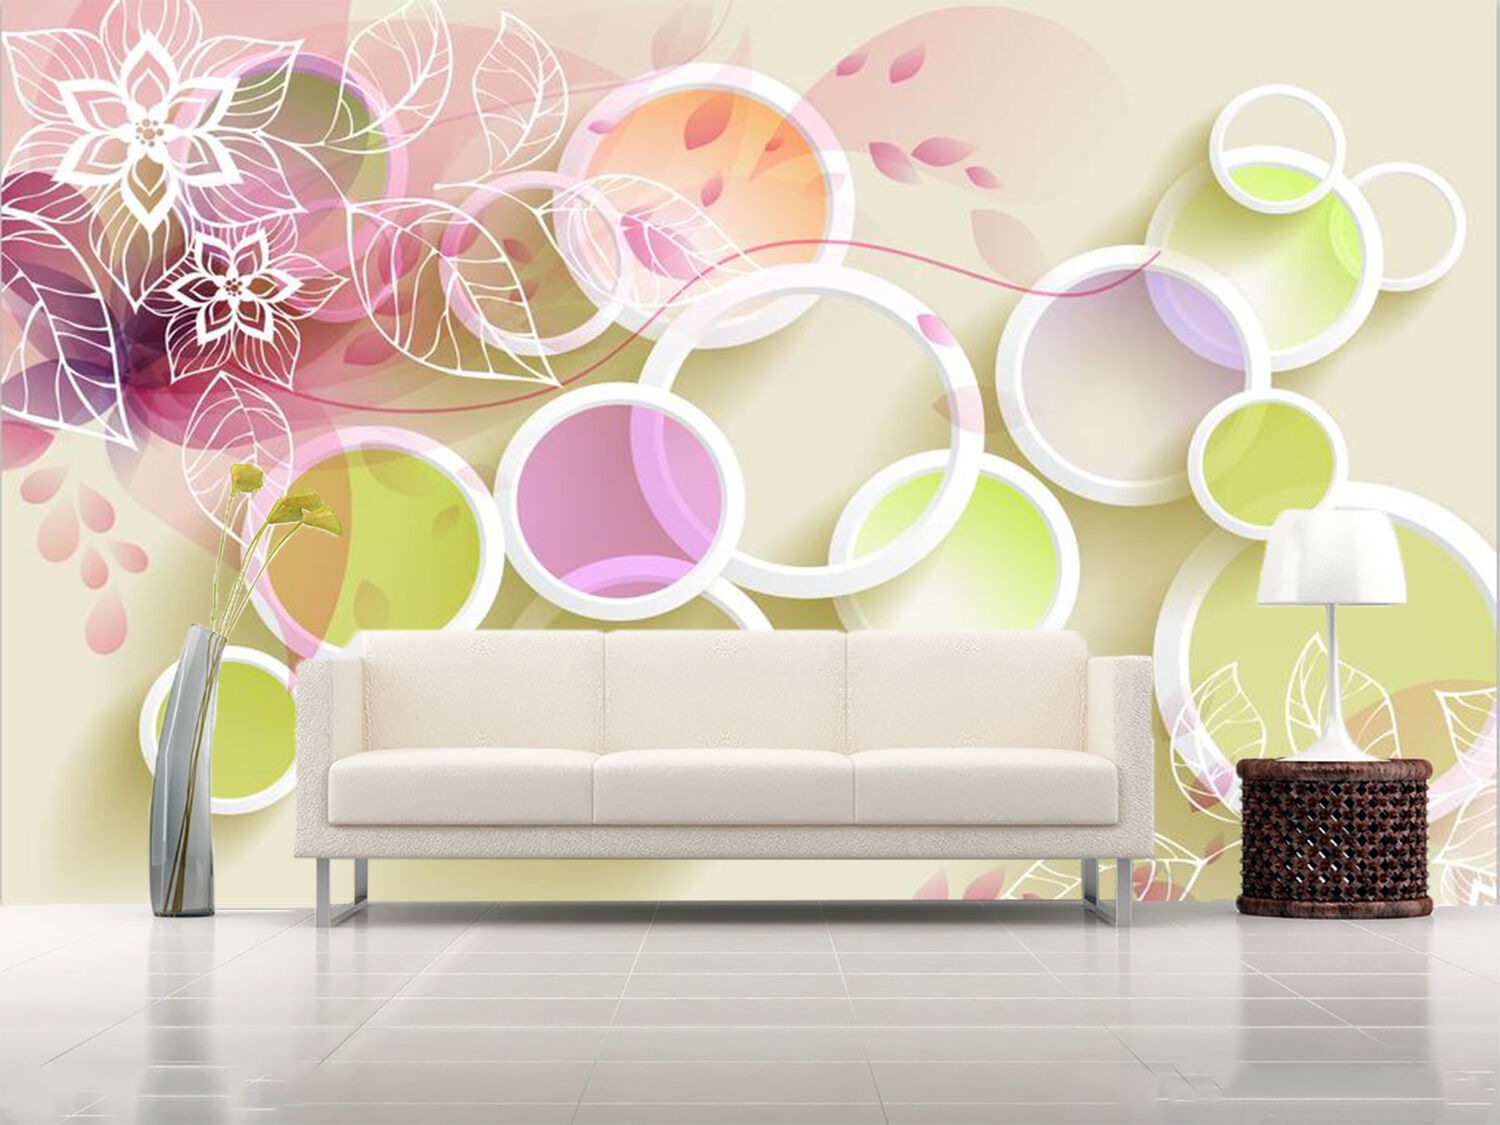 3D Flower Ring 84 Wallpaper Mural Paper Wall Print Wallpaper Murals UK